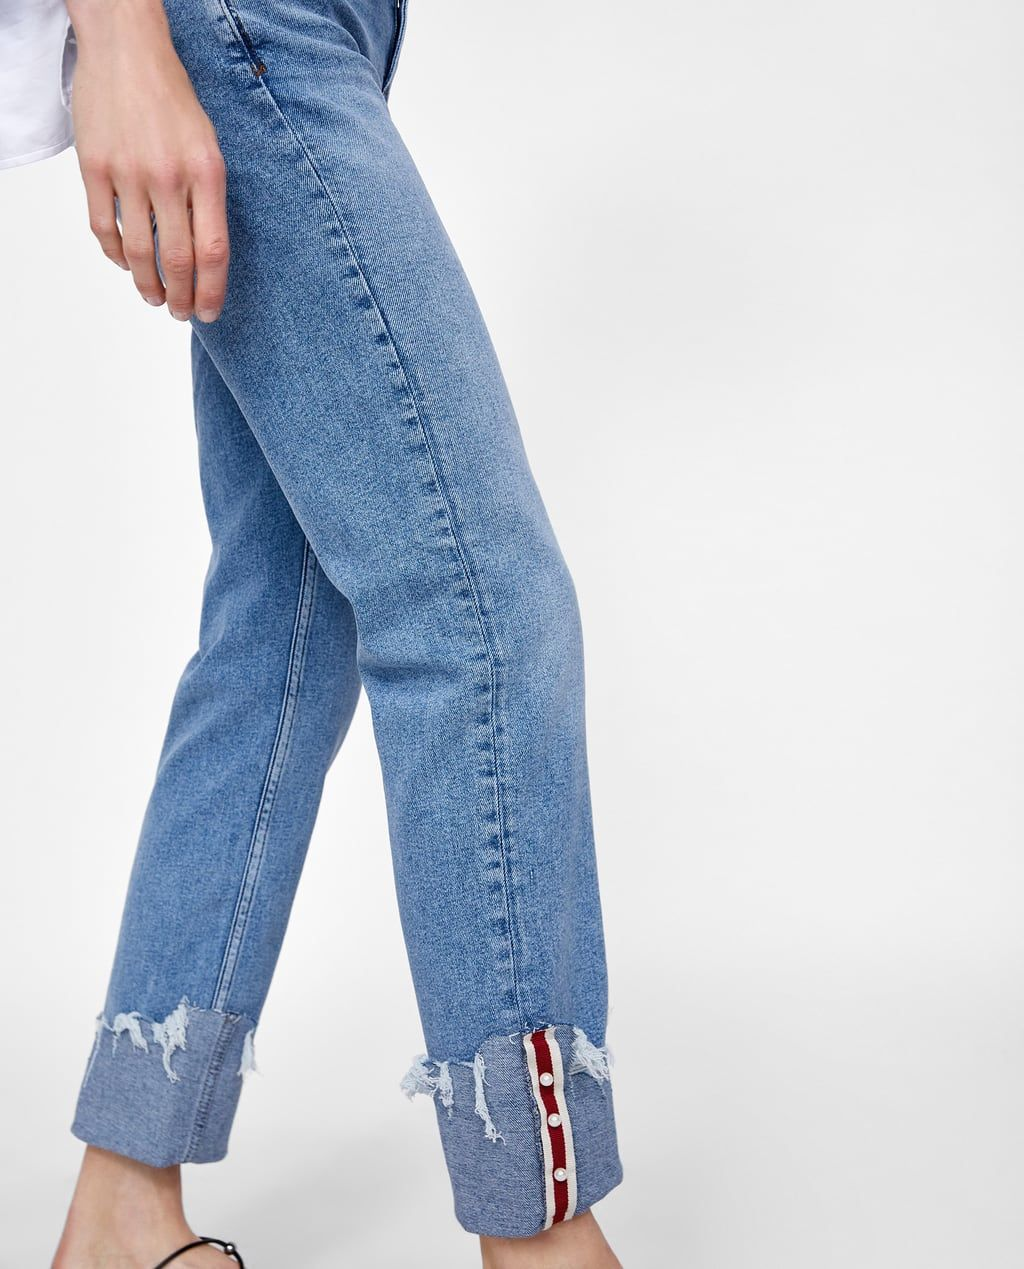 90e58591 Image 6 of Z1975 JEANS WITH PEARL-BEAD-TRIMMED CUFFS from Zara ...